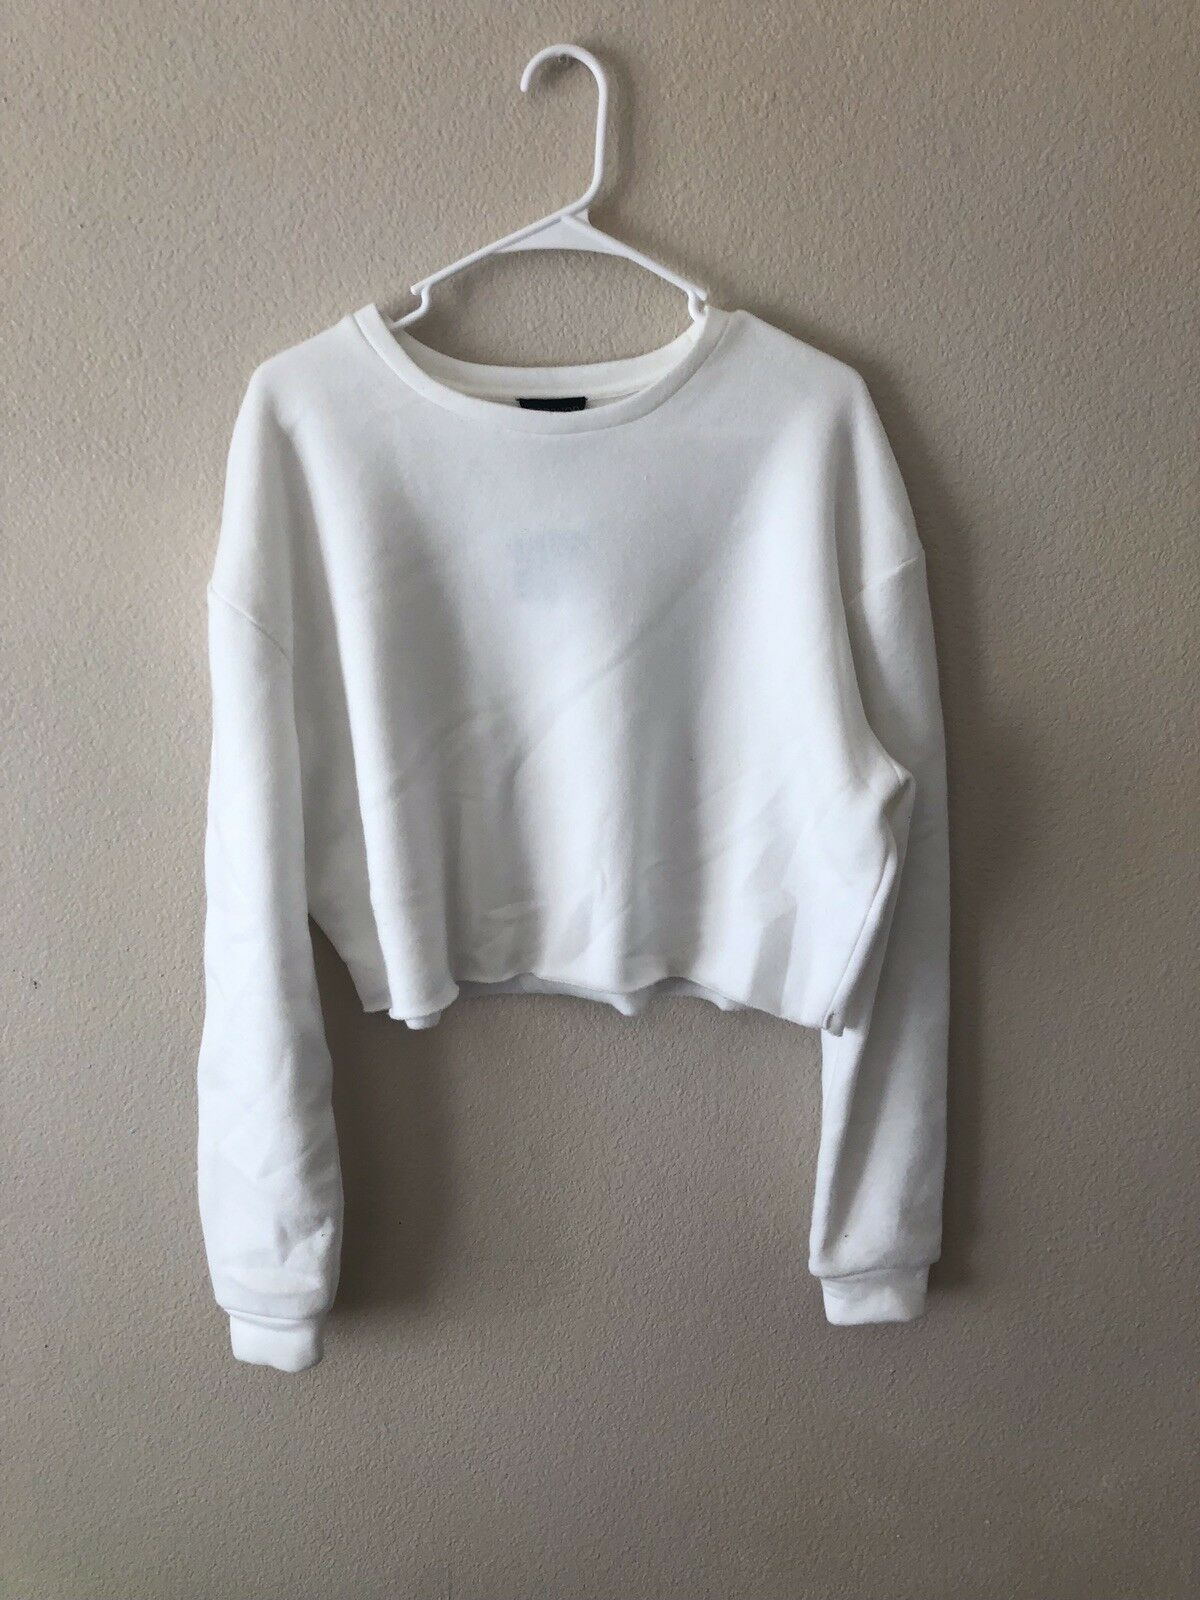 NEW Women's TopShop Cropped White Sweater